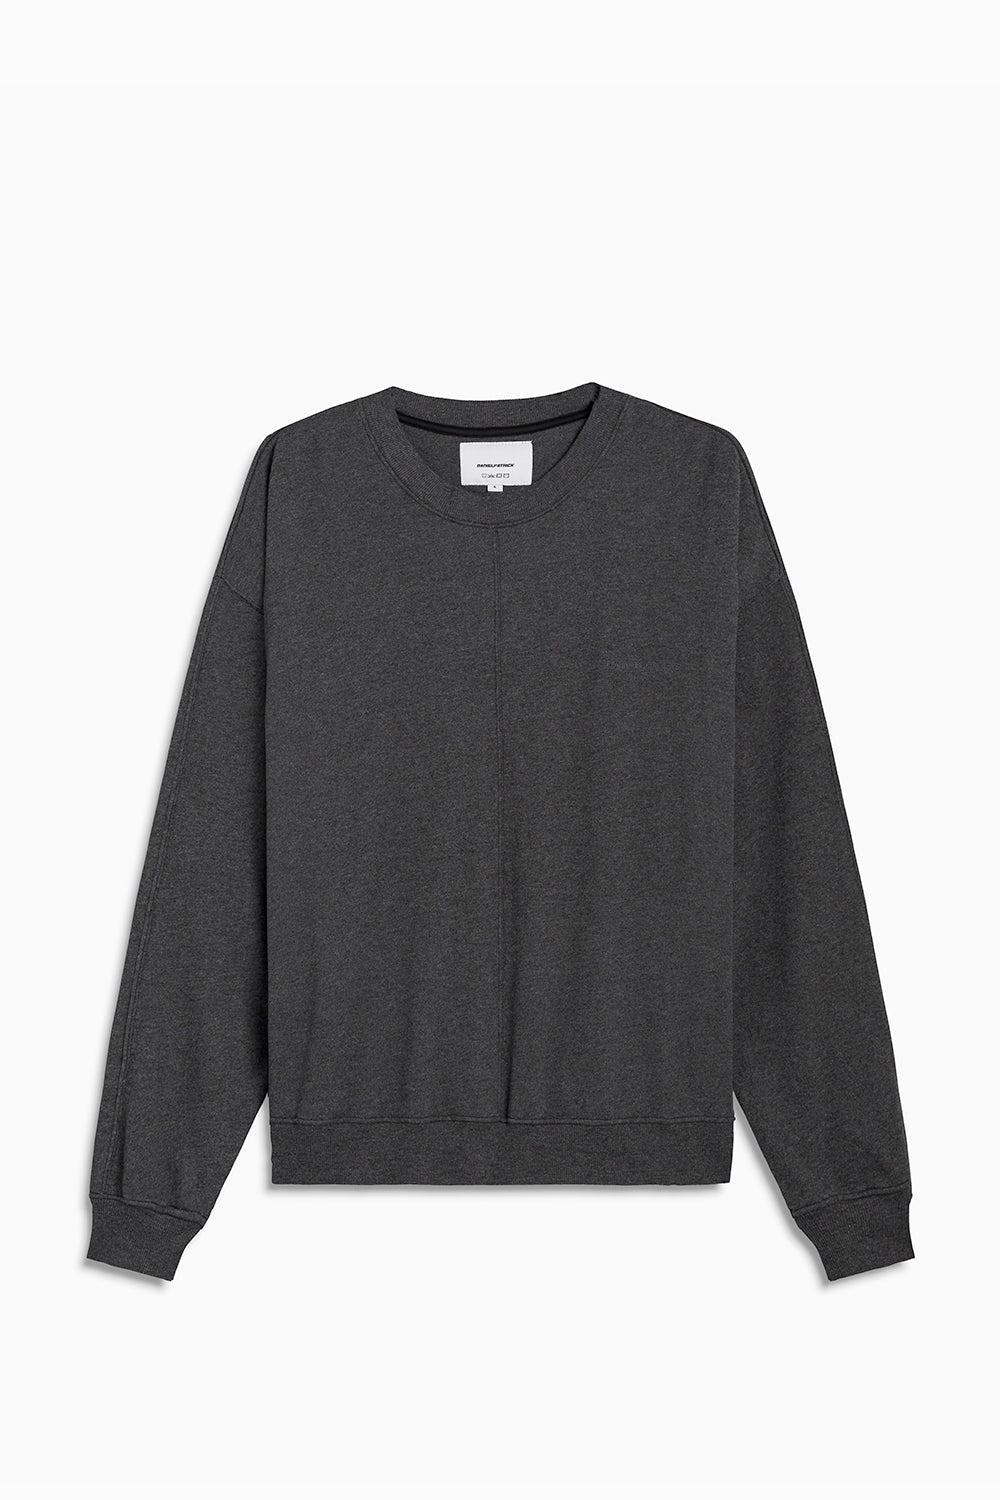 loop terry crewneck sweatshirt / black heather